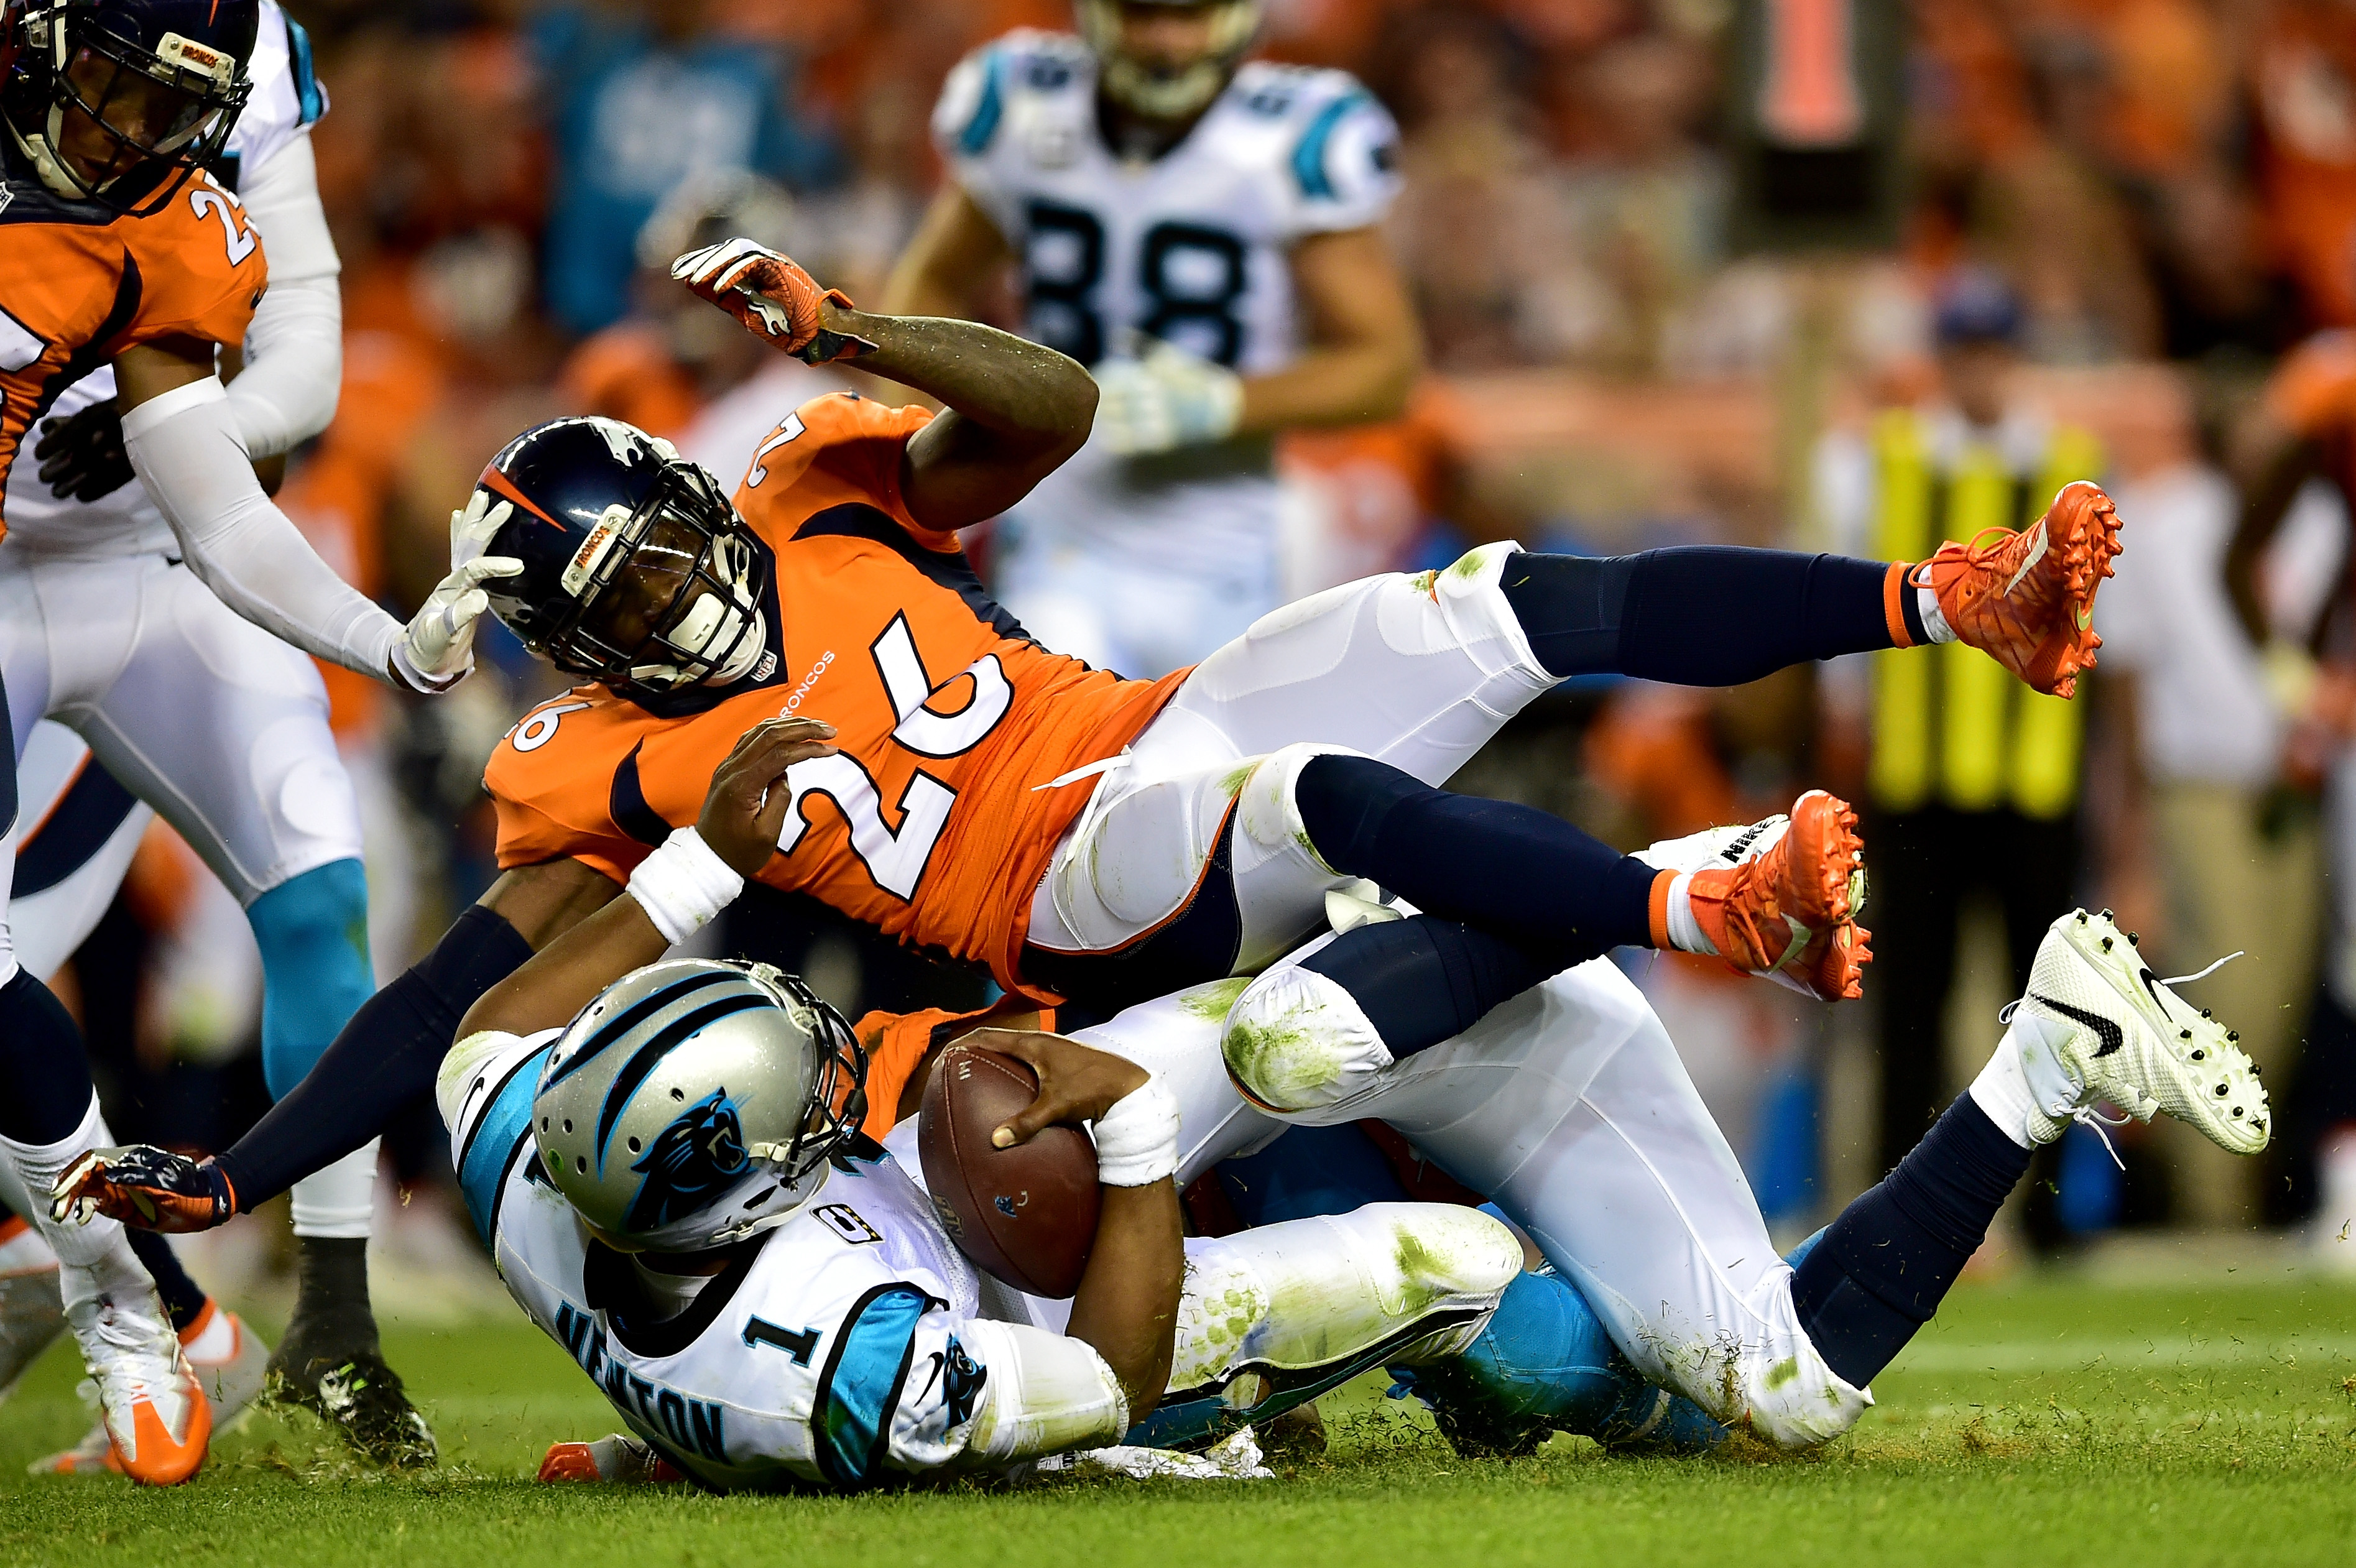 Quarterback Cam Newton #1 of the Carolina Panthers is hit by free safety Darian Stewart #26 of the Denver Broncos in the third quarter at Sports Authority Field at Mile High on September 8, 2016 in Denver, Colorado. (Photo by Dustin Bradford/Getty Images)